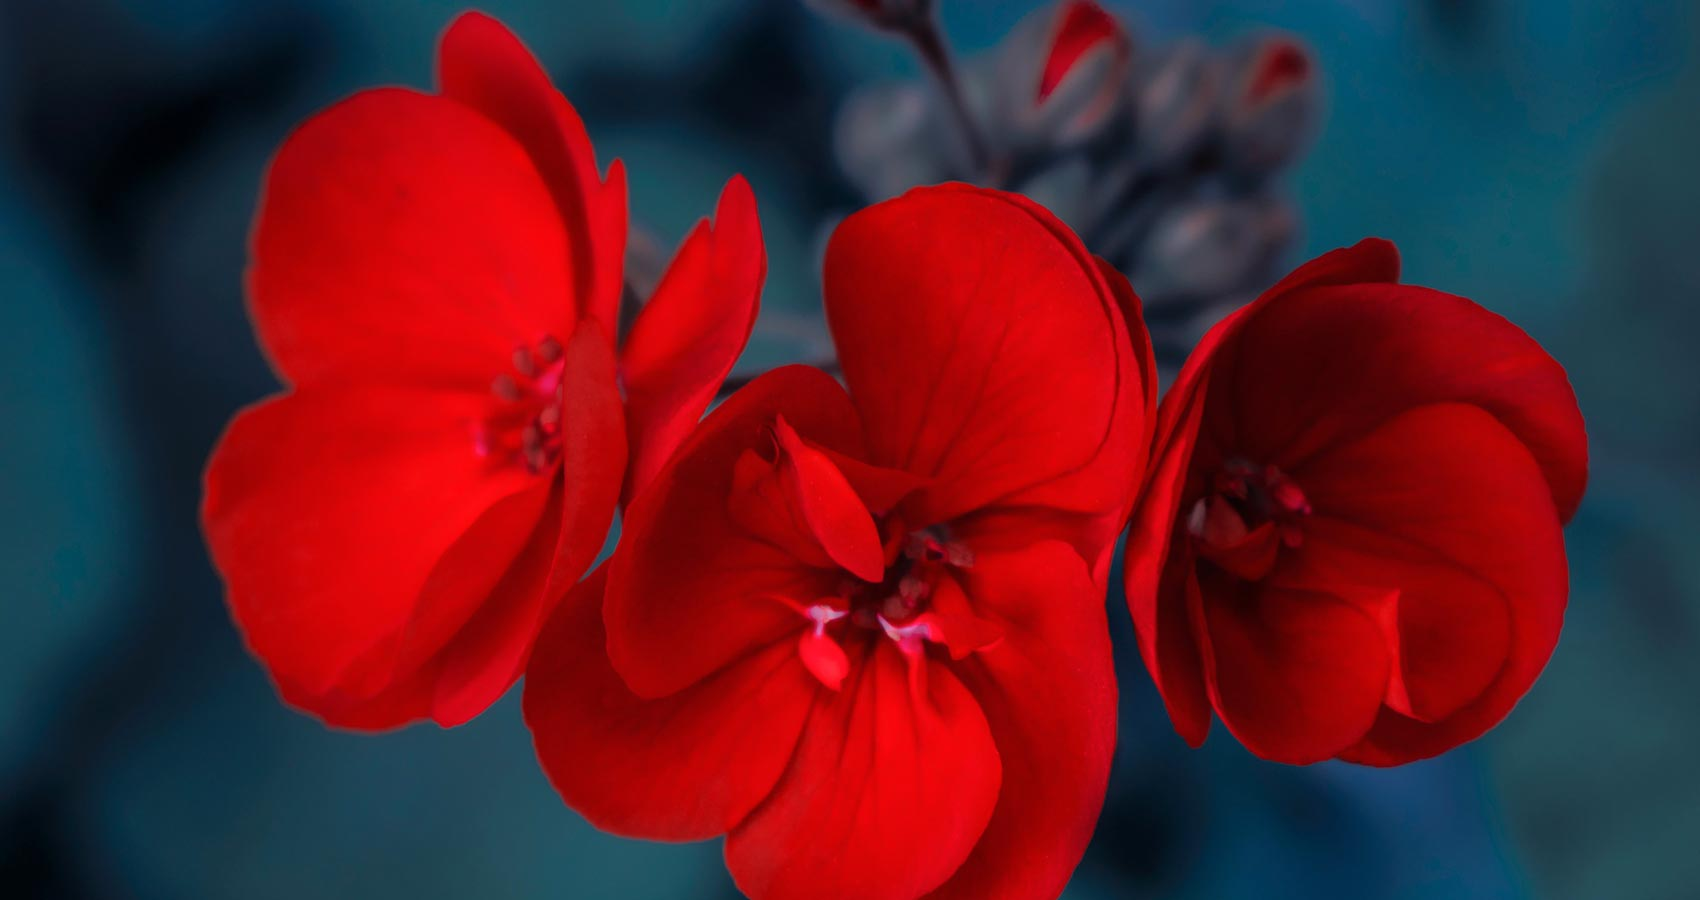 Tell Me, O, You Blissful Blossom, a poem by Arun Verma at Spillwords.com